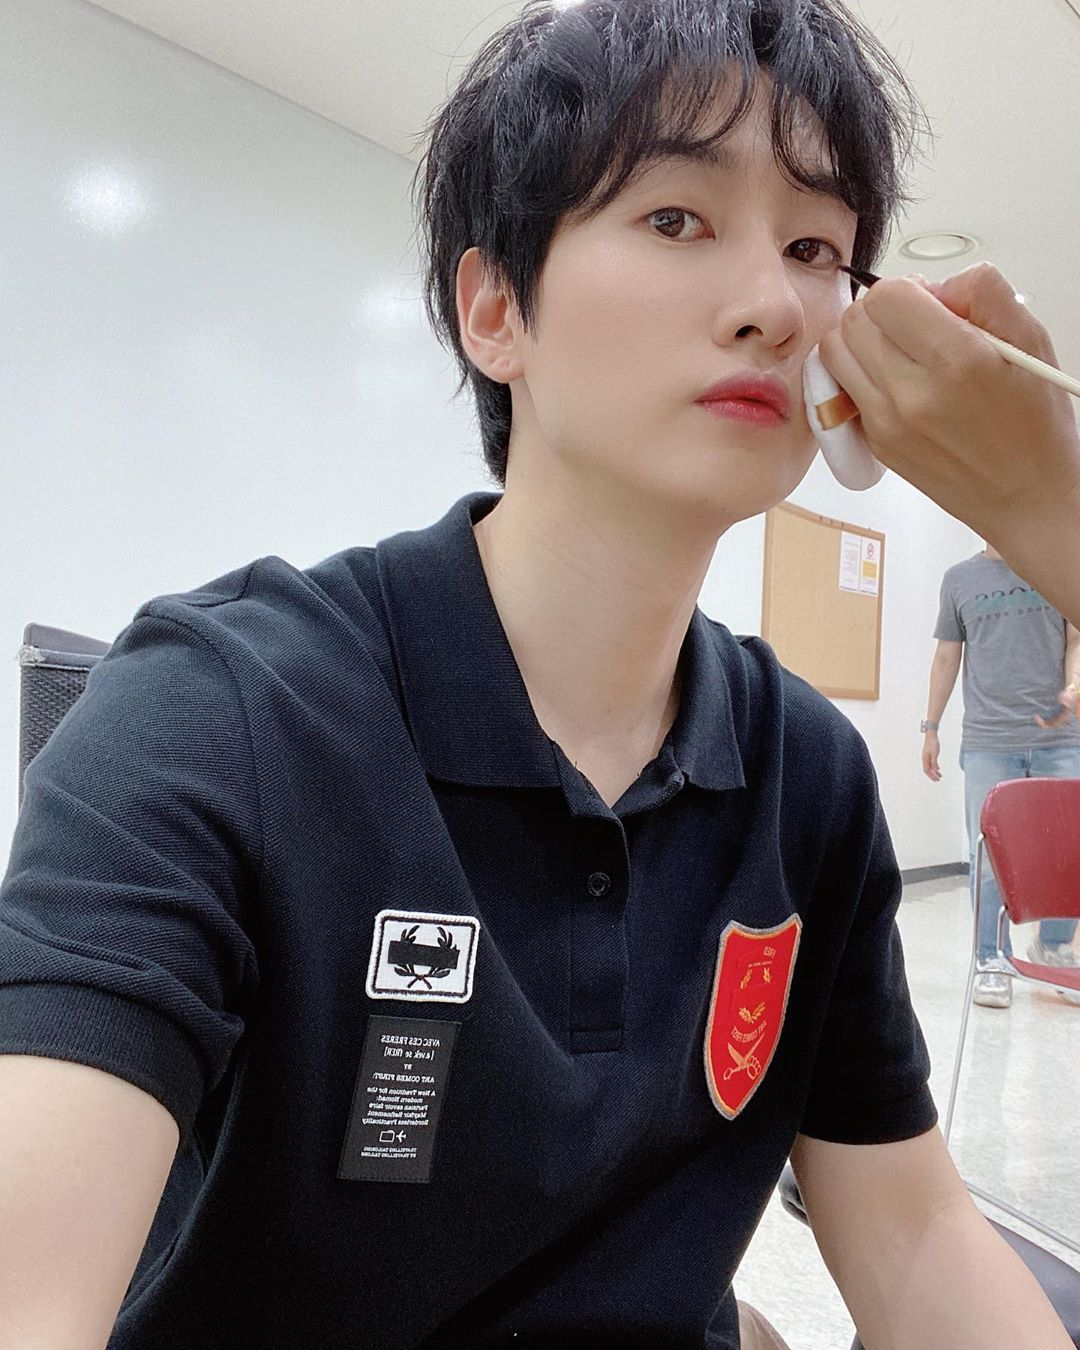 Eunhyuk Biography Height Life Story Super Stars Bio Find and save images from the eunhyuk collection by gaby ferreira (gabyfsd) on we heart it, your everyday app to get lost in what you love. eunhyuk biography height life